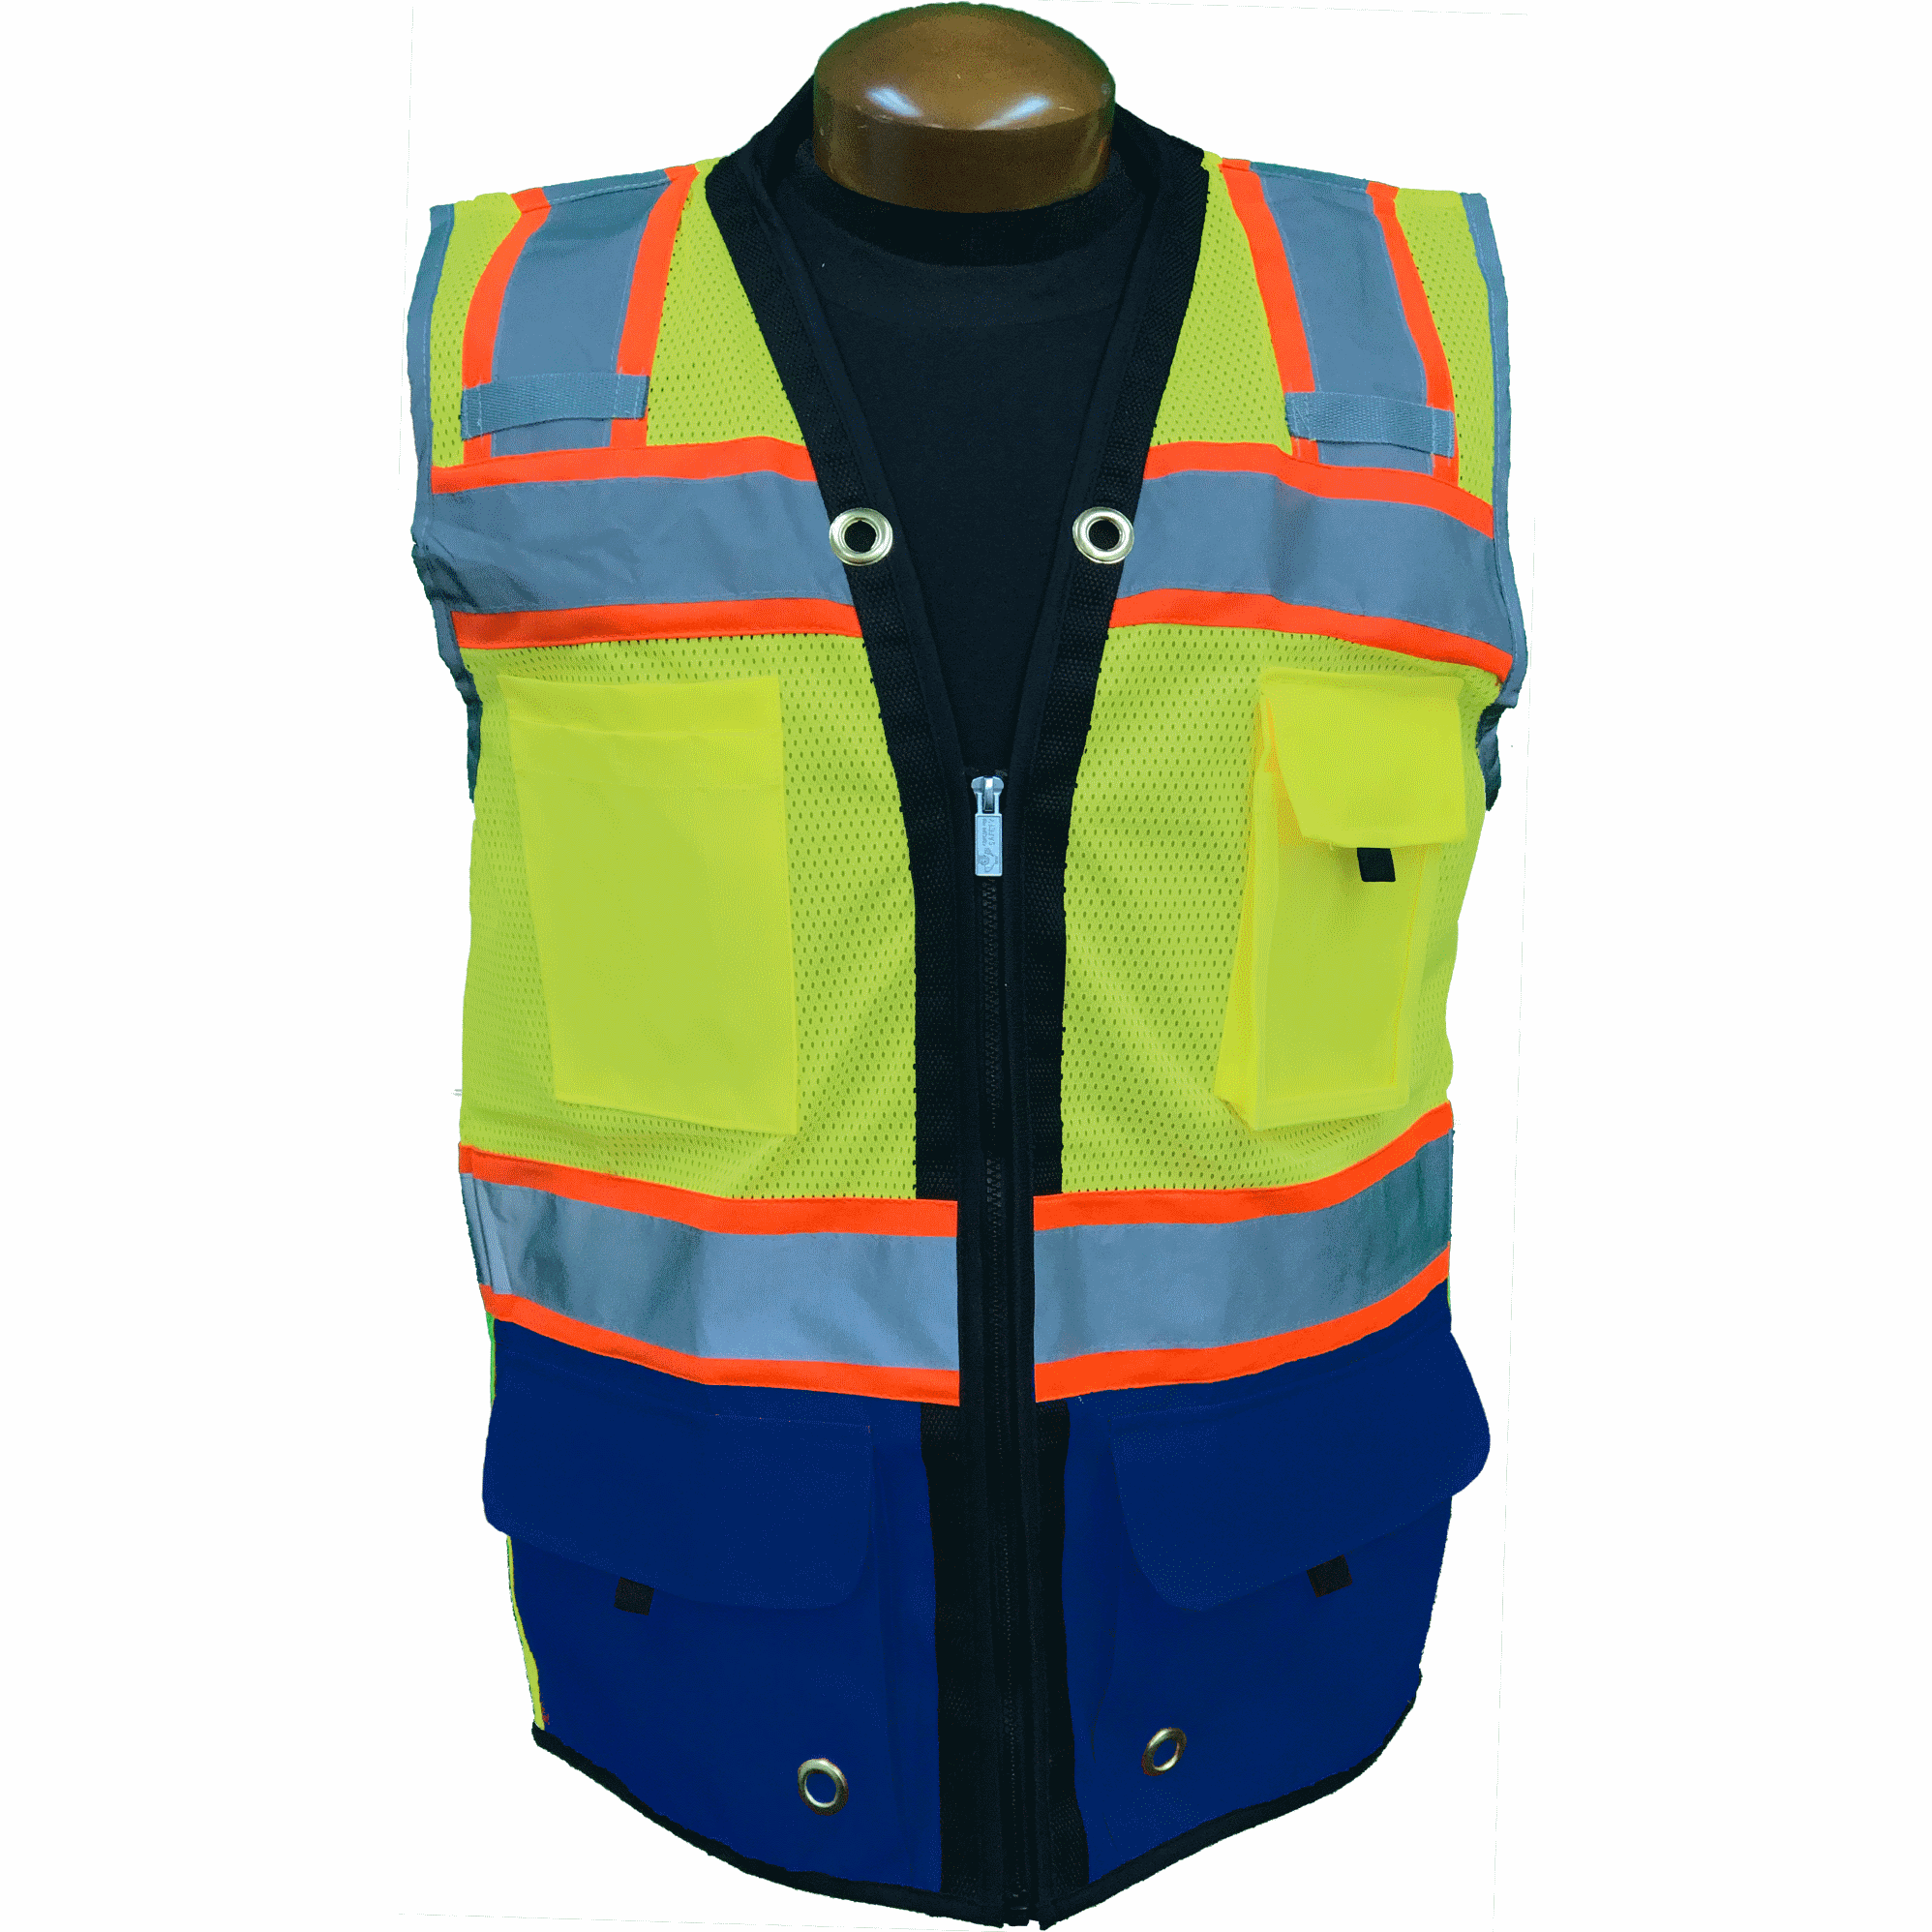 Premium Two Tone Surveyor Vest  - Red - Navy Blue